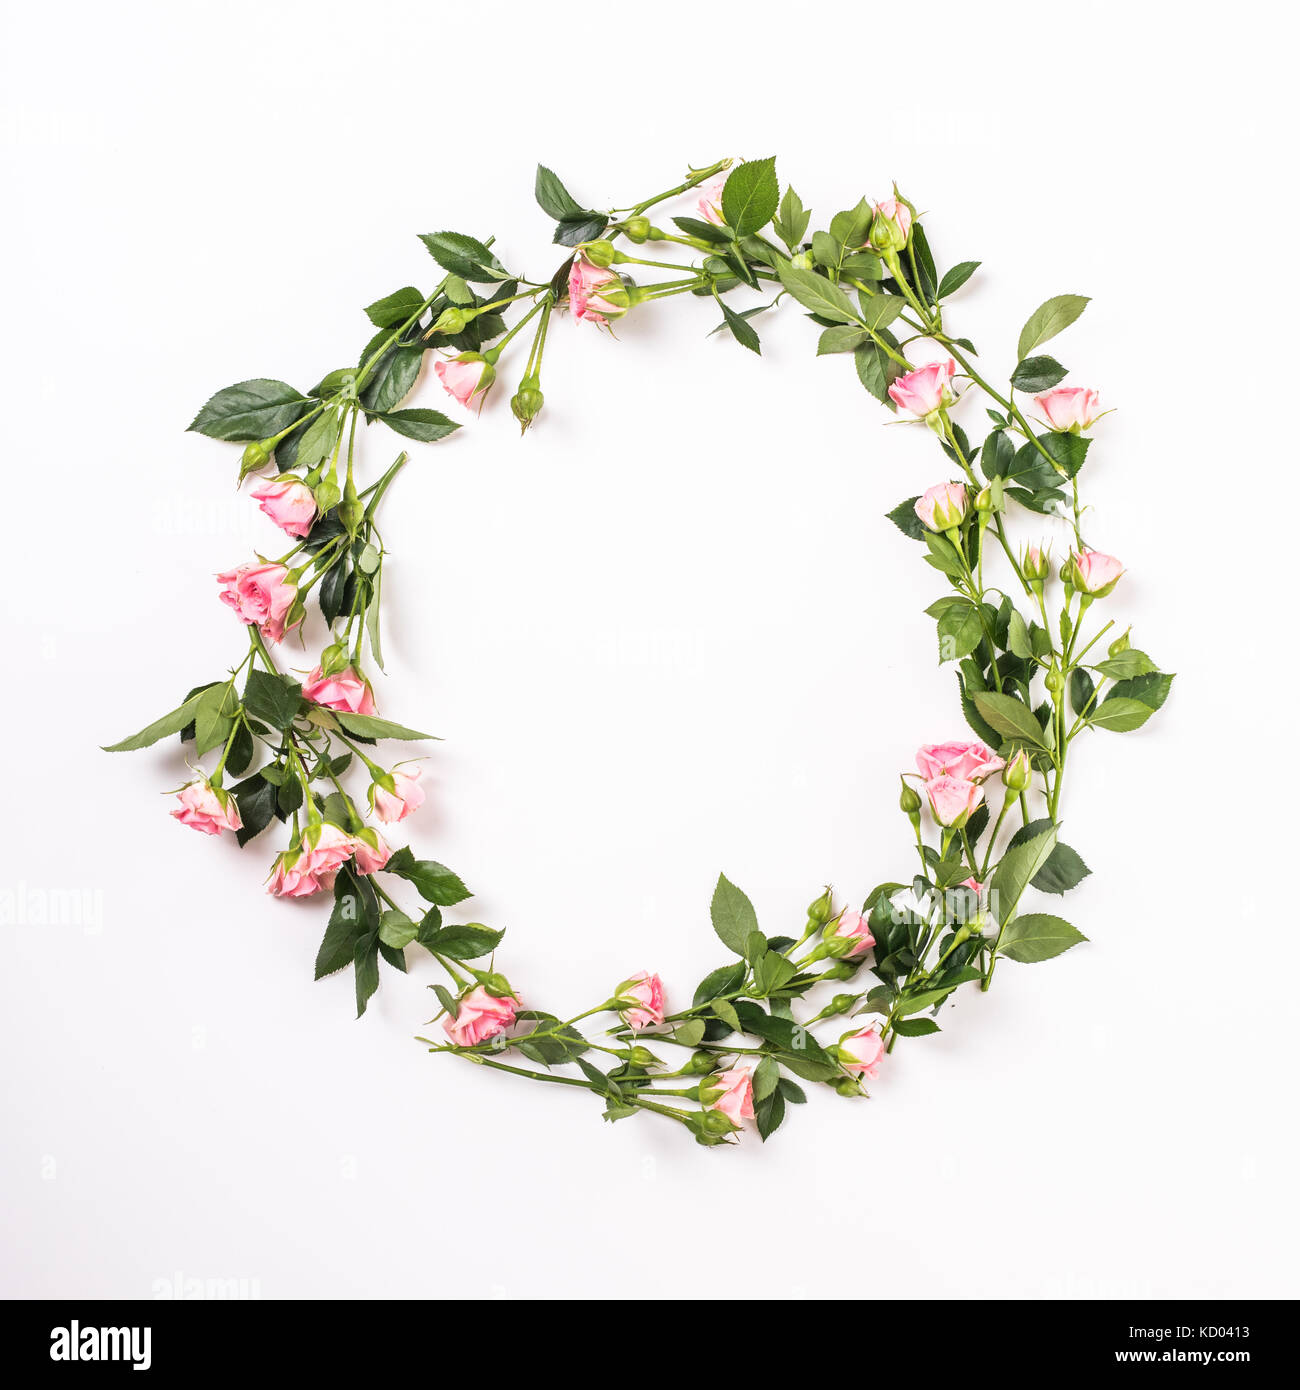 Round Frame With Pink Flower Buds Branches And Leaves Isolated On